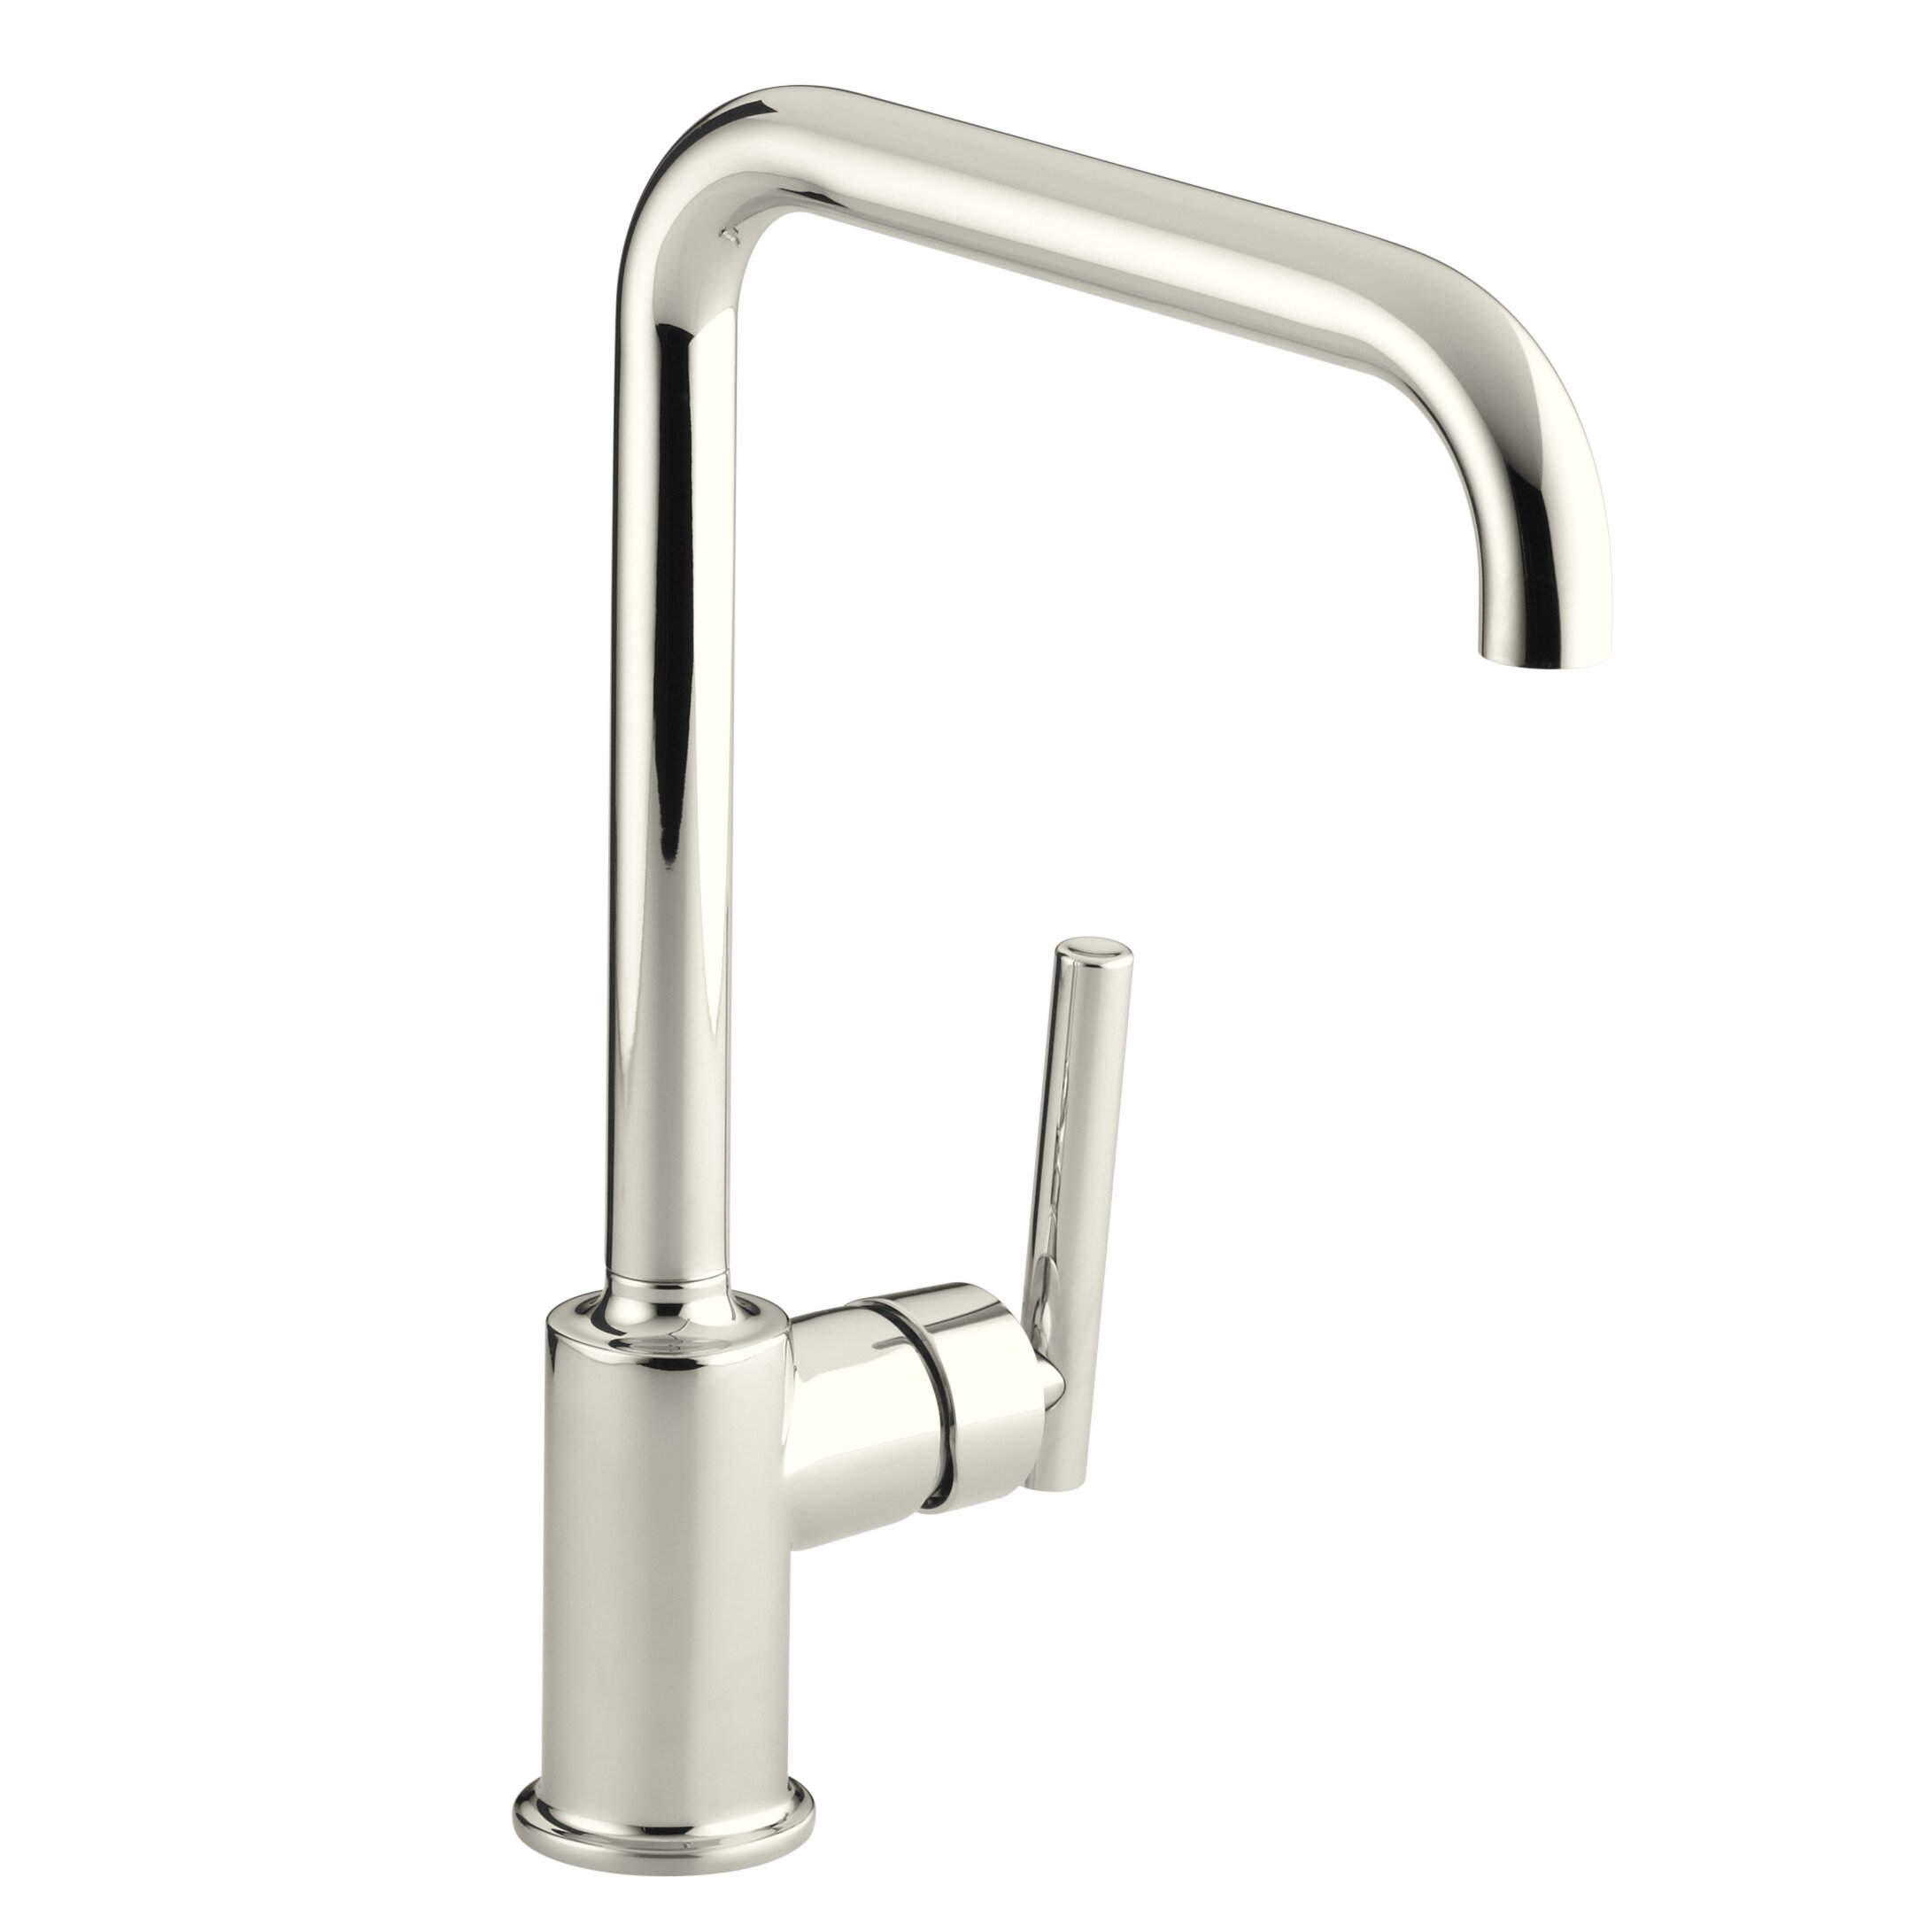 Articulating Kitchen Faucet Kohler Purist Single Hole Kitchen Sink Faucet With 8 Spout